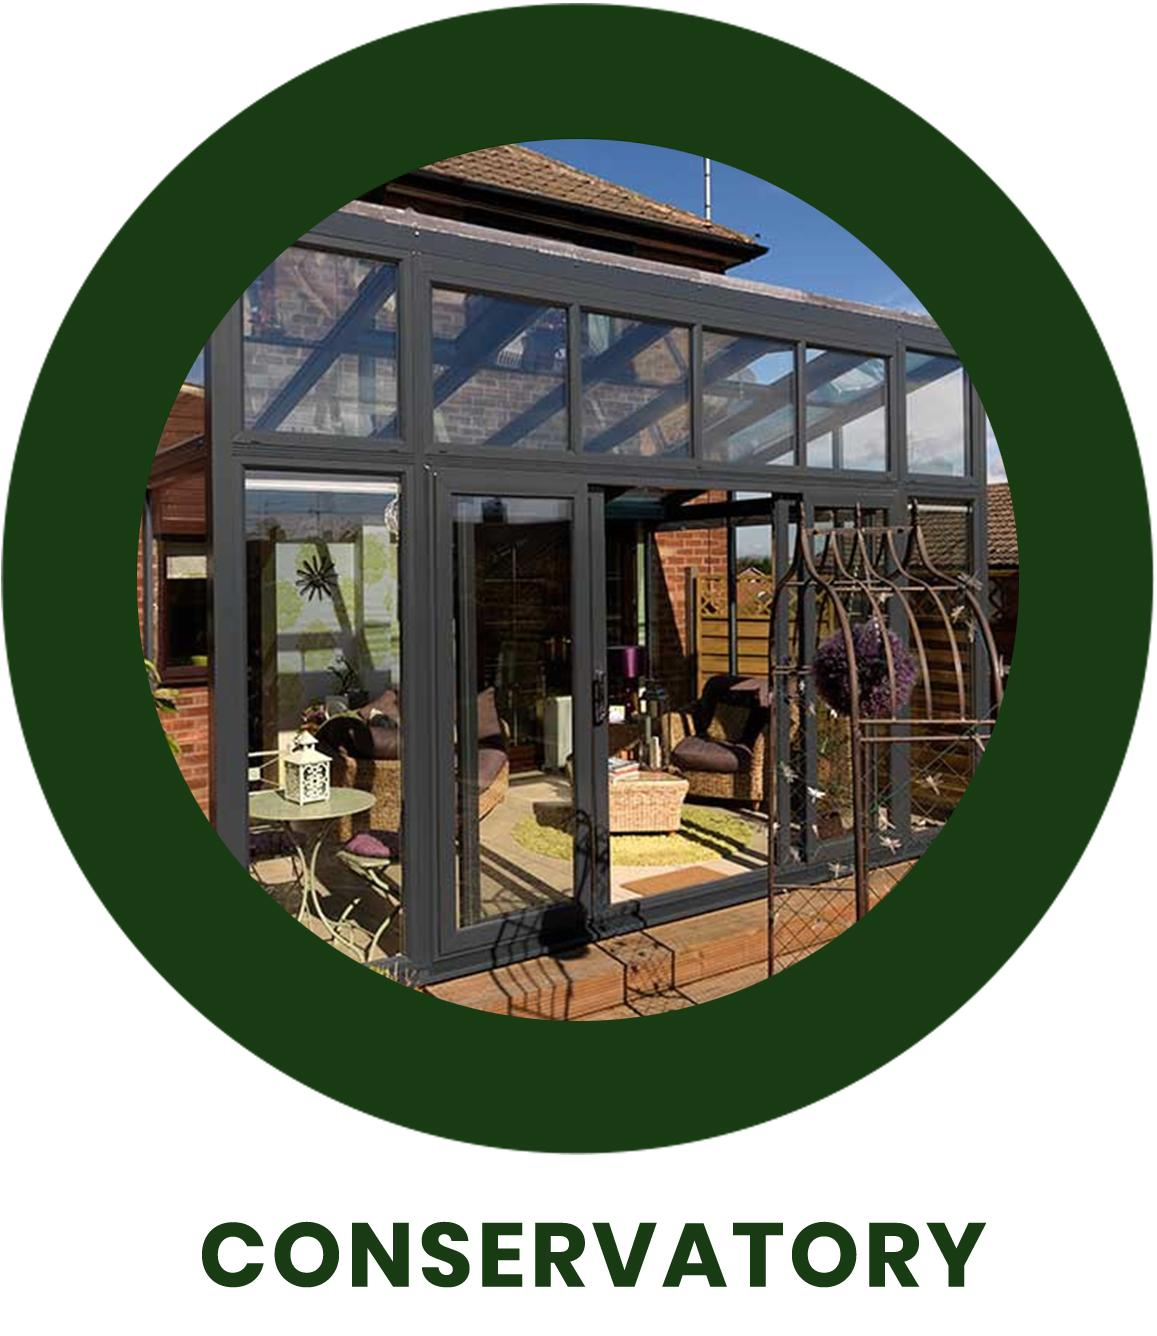 heath services conservatory